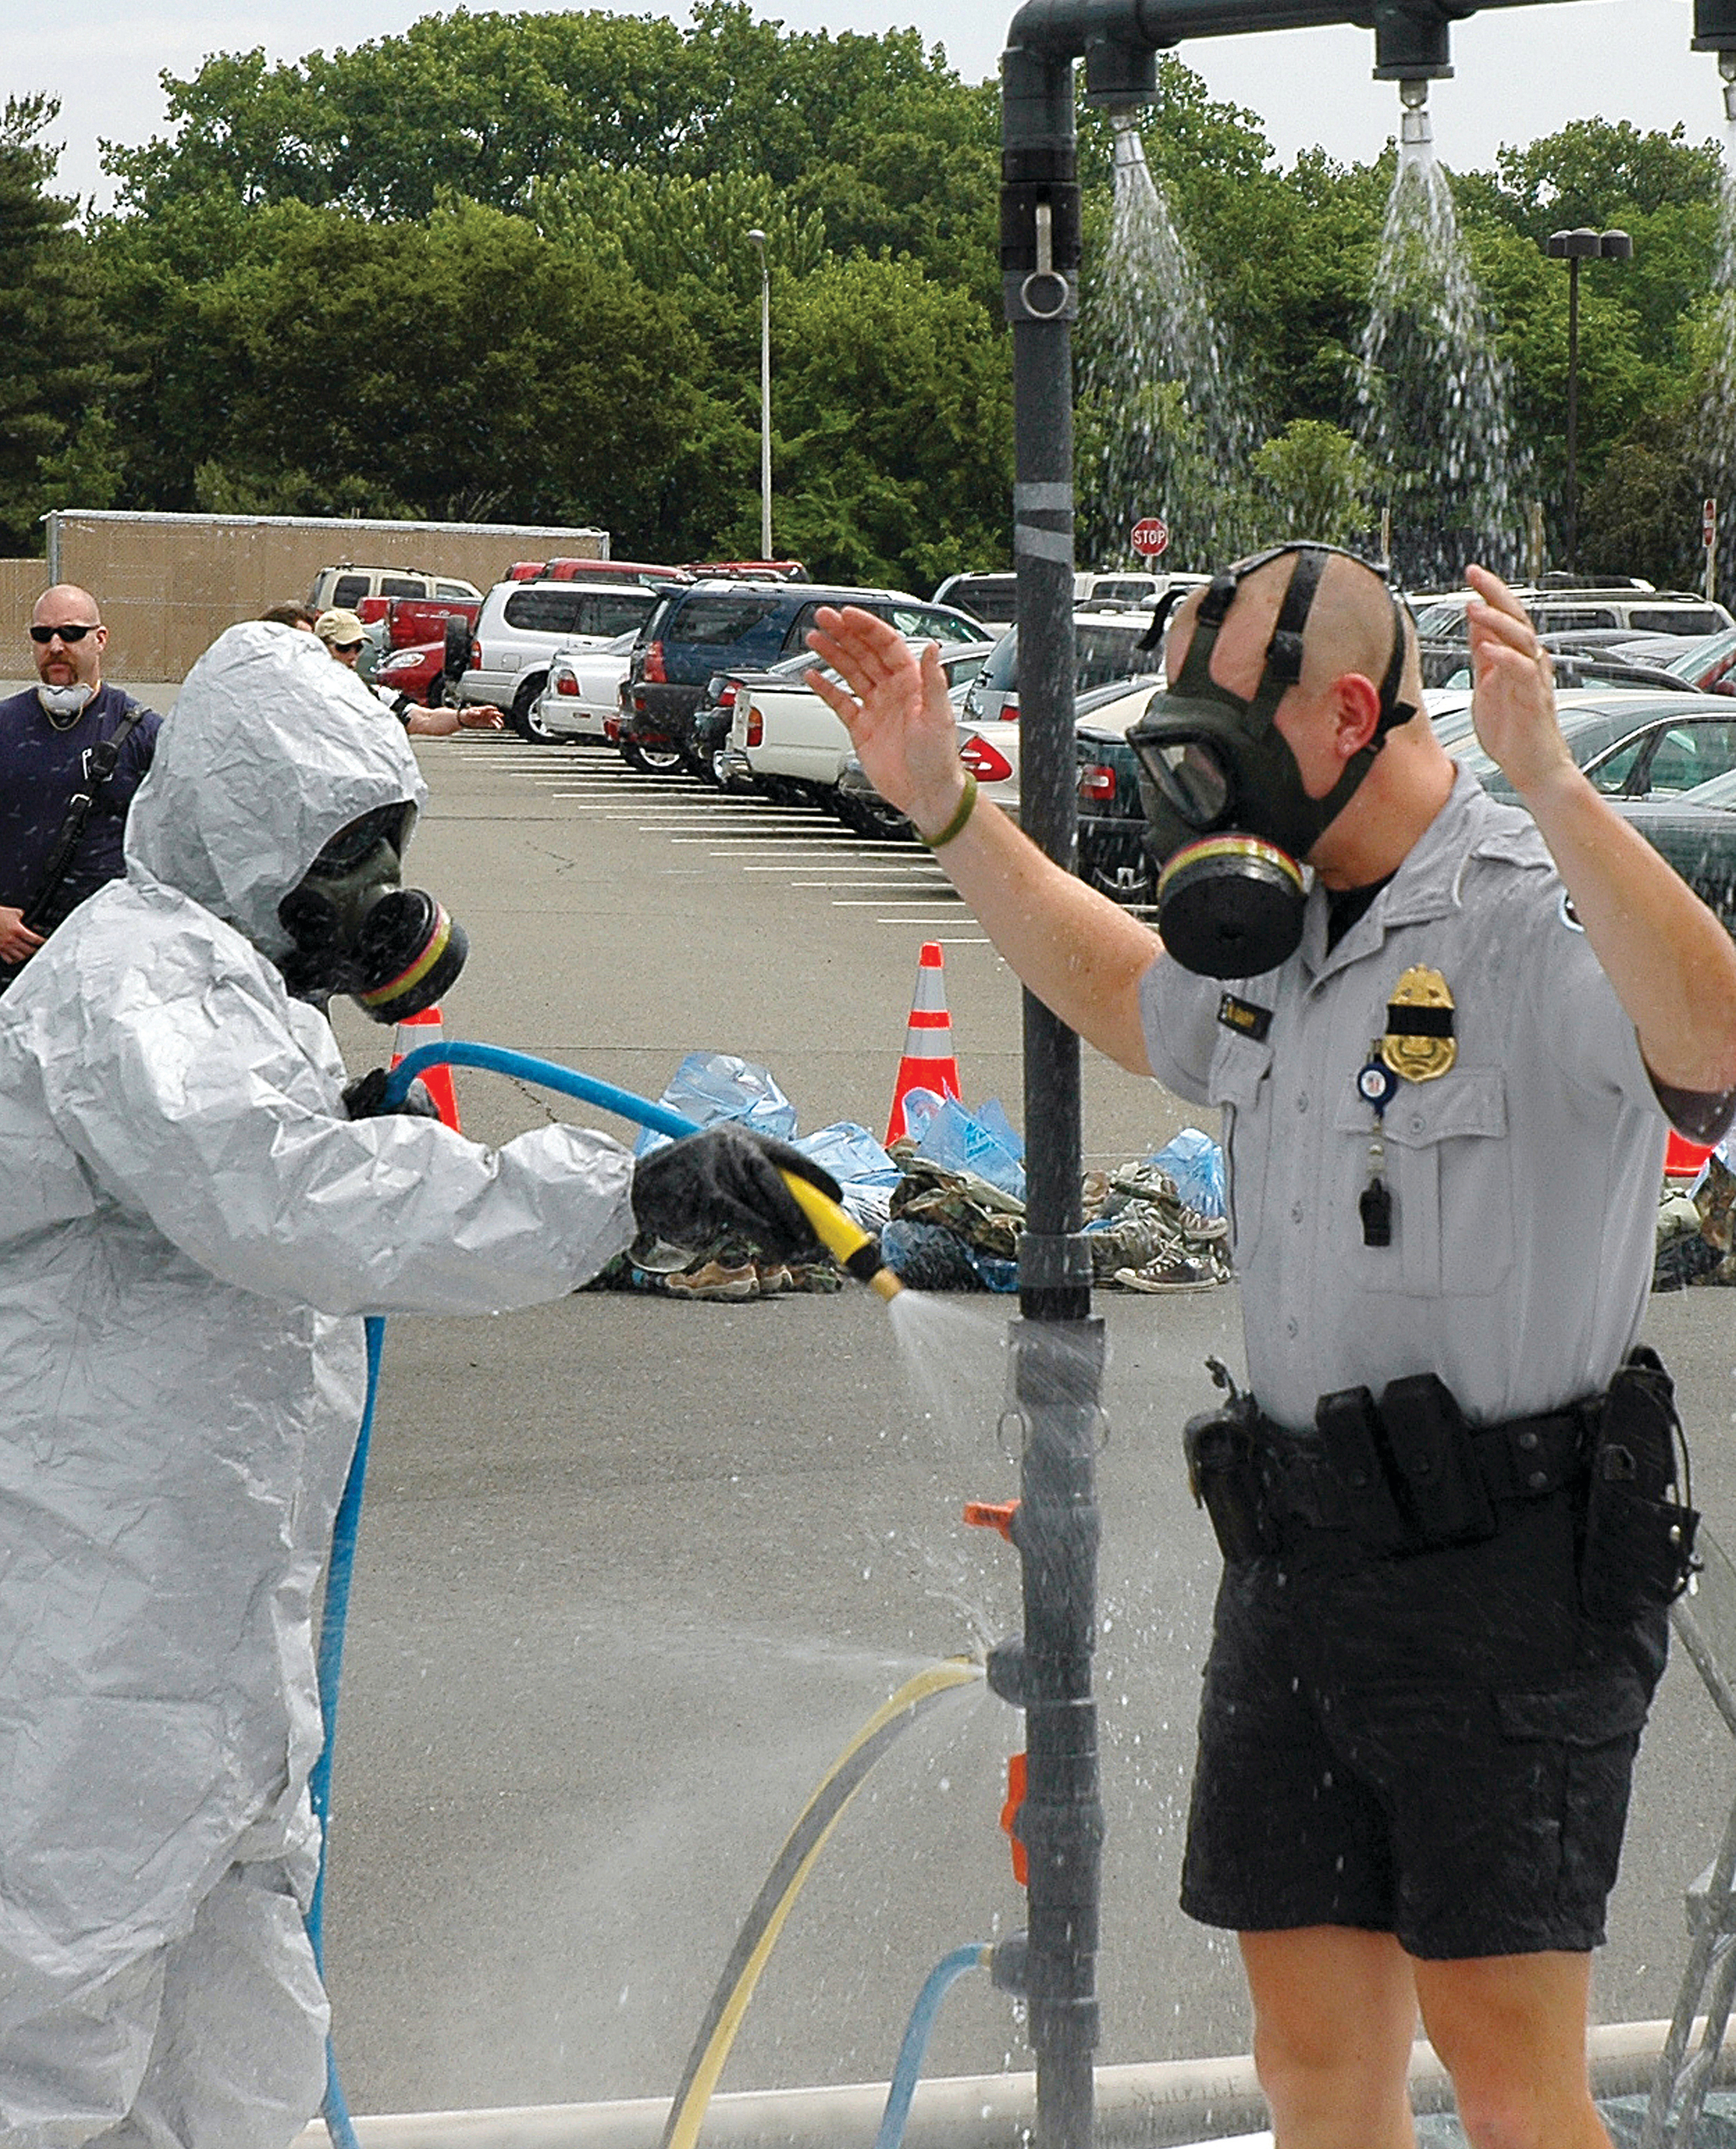 A member of the Pentagon Force Protection Agency is decontaminated during an exercise at the Pentagon on Wednesday, May 17, 2006. During Exercise Gallant Fox 06, officials from Washington, D.C., area fire, emergency medical service, and police departments; military members; and members of the Pentagon Force Protection Agency participated in the exercise, which included decontamination and medical processing of victims of a simulated anthrax attack at the Pentagon. U.S. Air Force photo/Staff Sgt. C. Todd Lopez